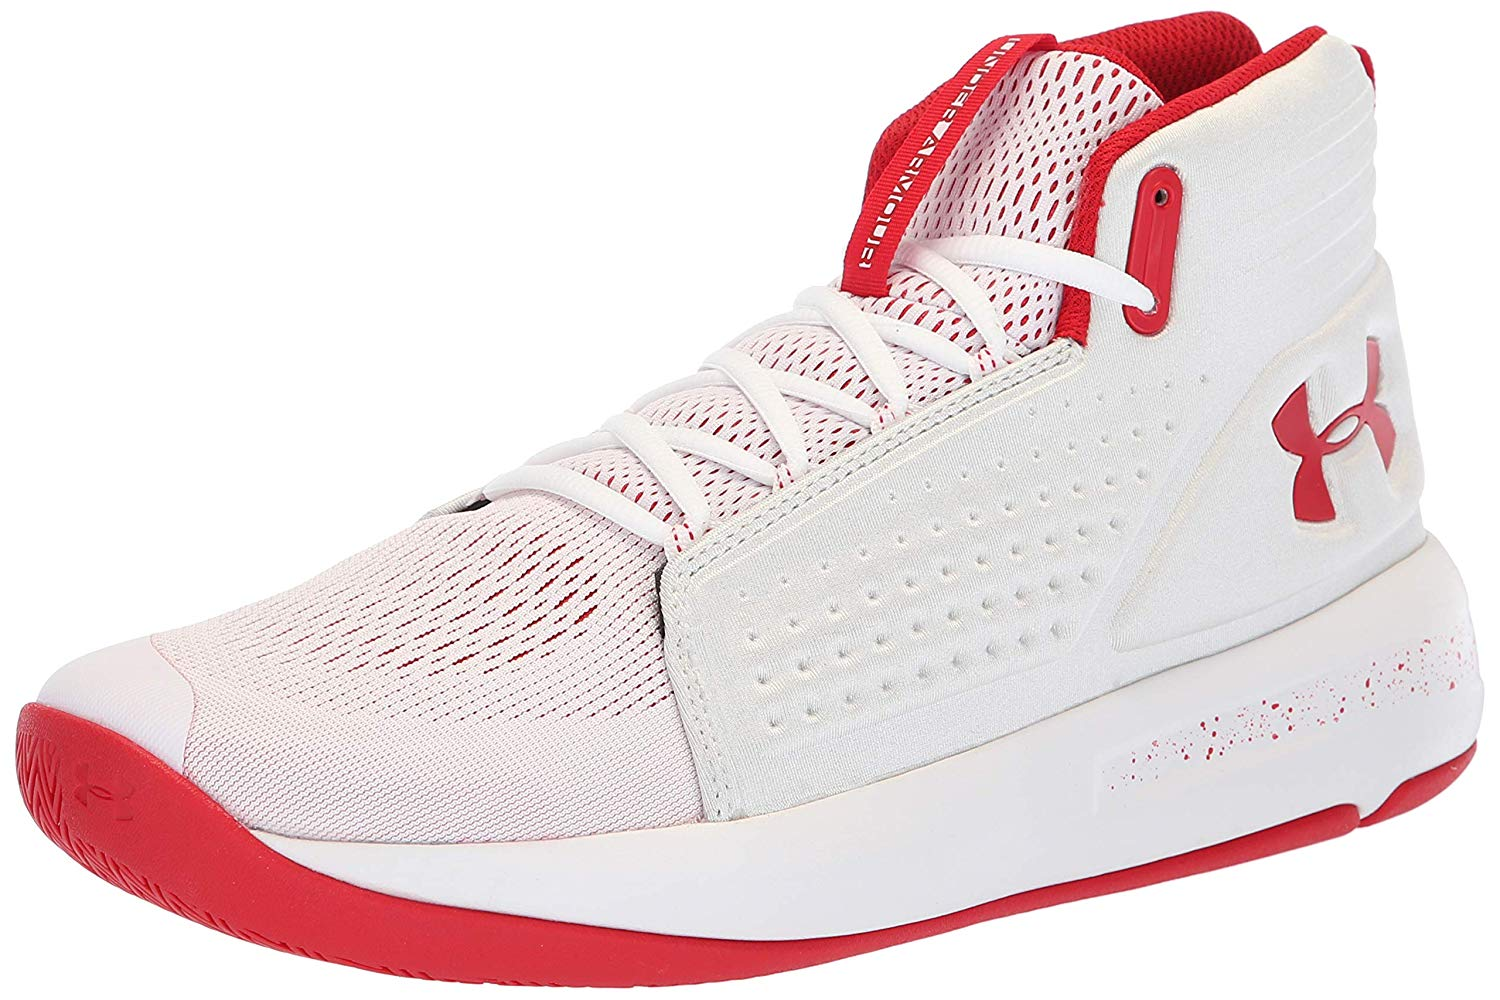 UNDER ARMOUR Men's Basketball Shoes 3020620-101